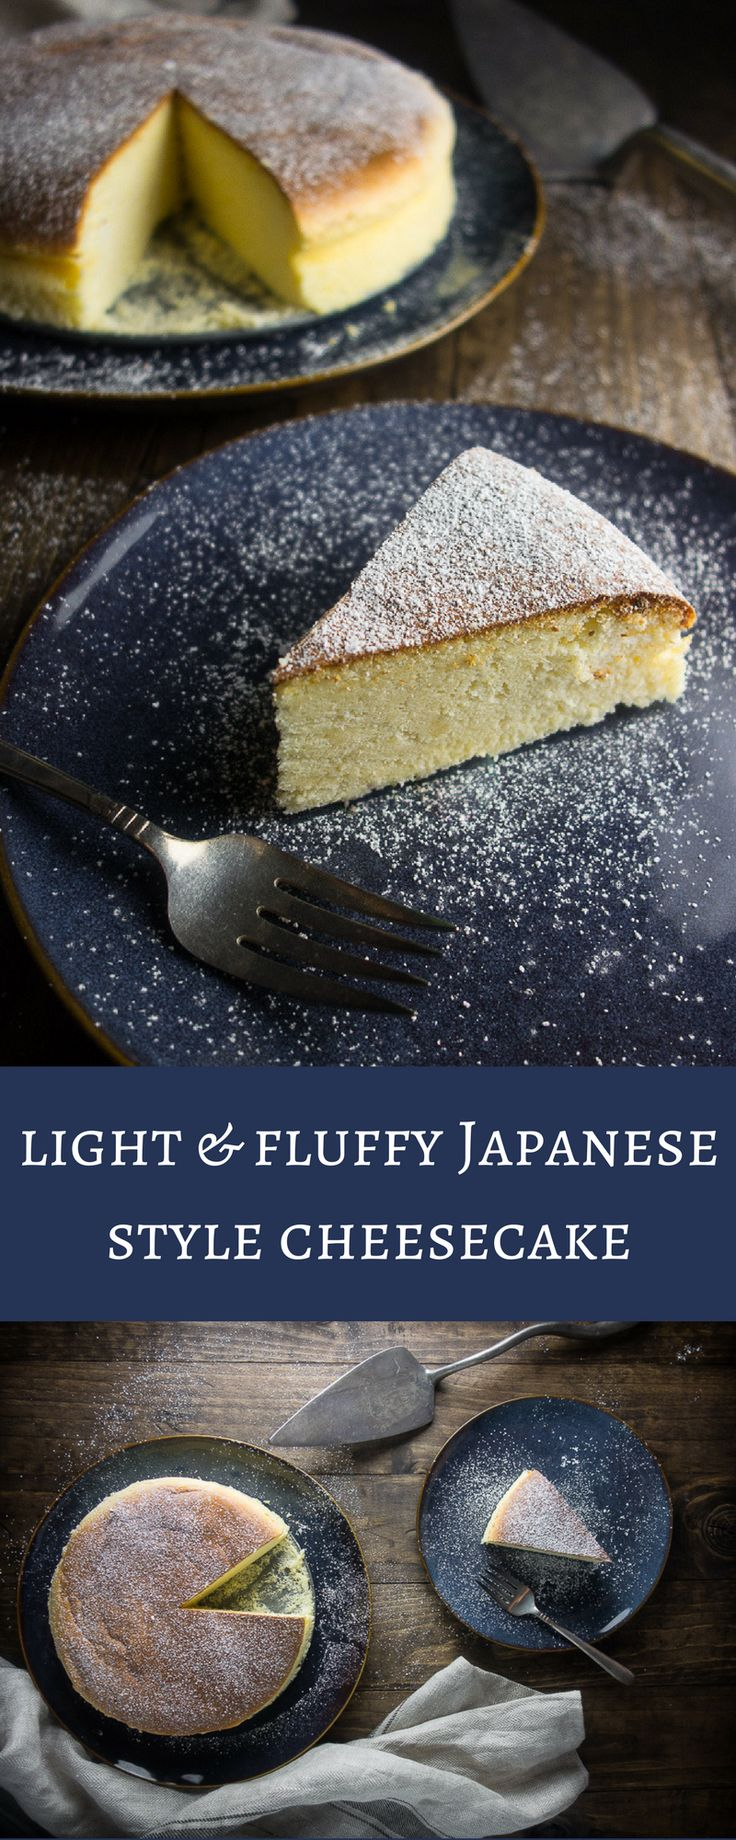 This light & fluffy Japanese style cheesecake (or soufflé cheesecake) will totally melt in your mouth - perfect for that cheesecake lover in your life!    japanese cheesecake recipe | soft fluffy Japanese cheesecake | Japanese desserts | Japanese recipes | soufflé cheesecake | airy Japanese cheesecake | Japanese cotton cheesecake | creamy Japanese cheesecake | best cheesecake   via @Went Here 8 This